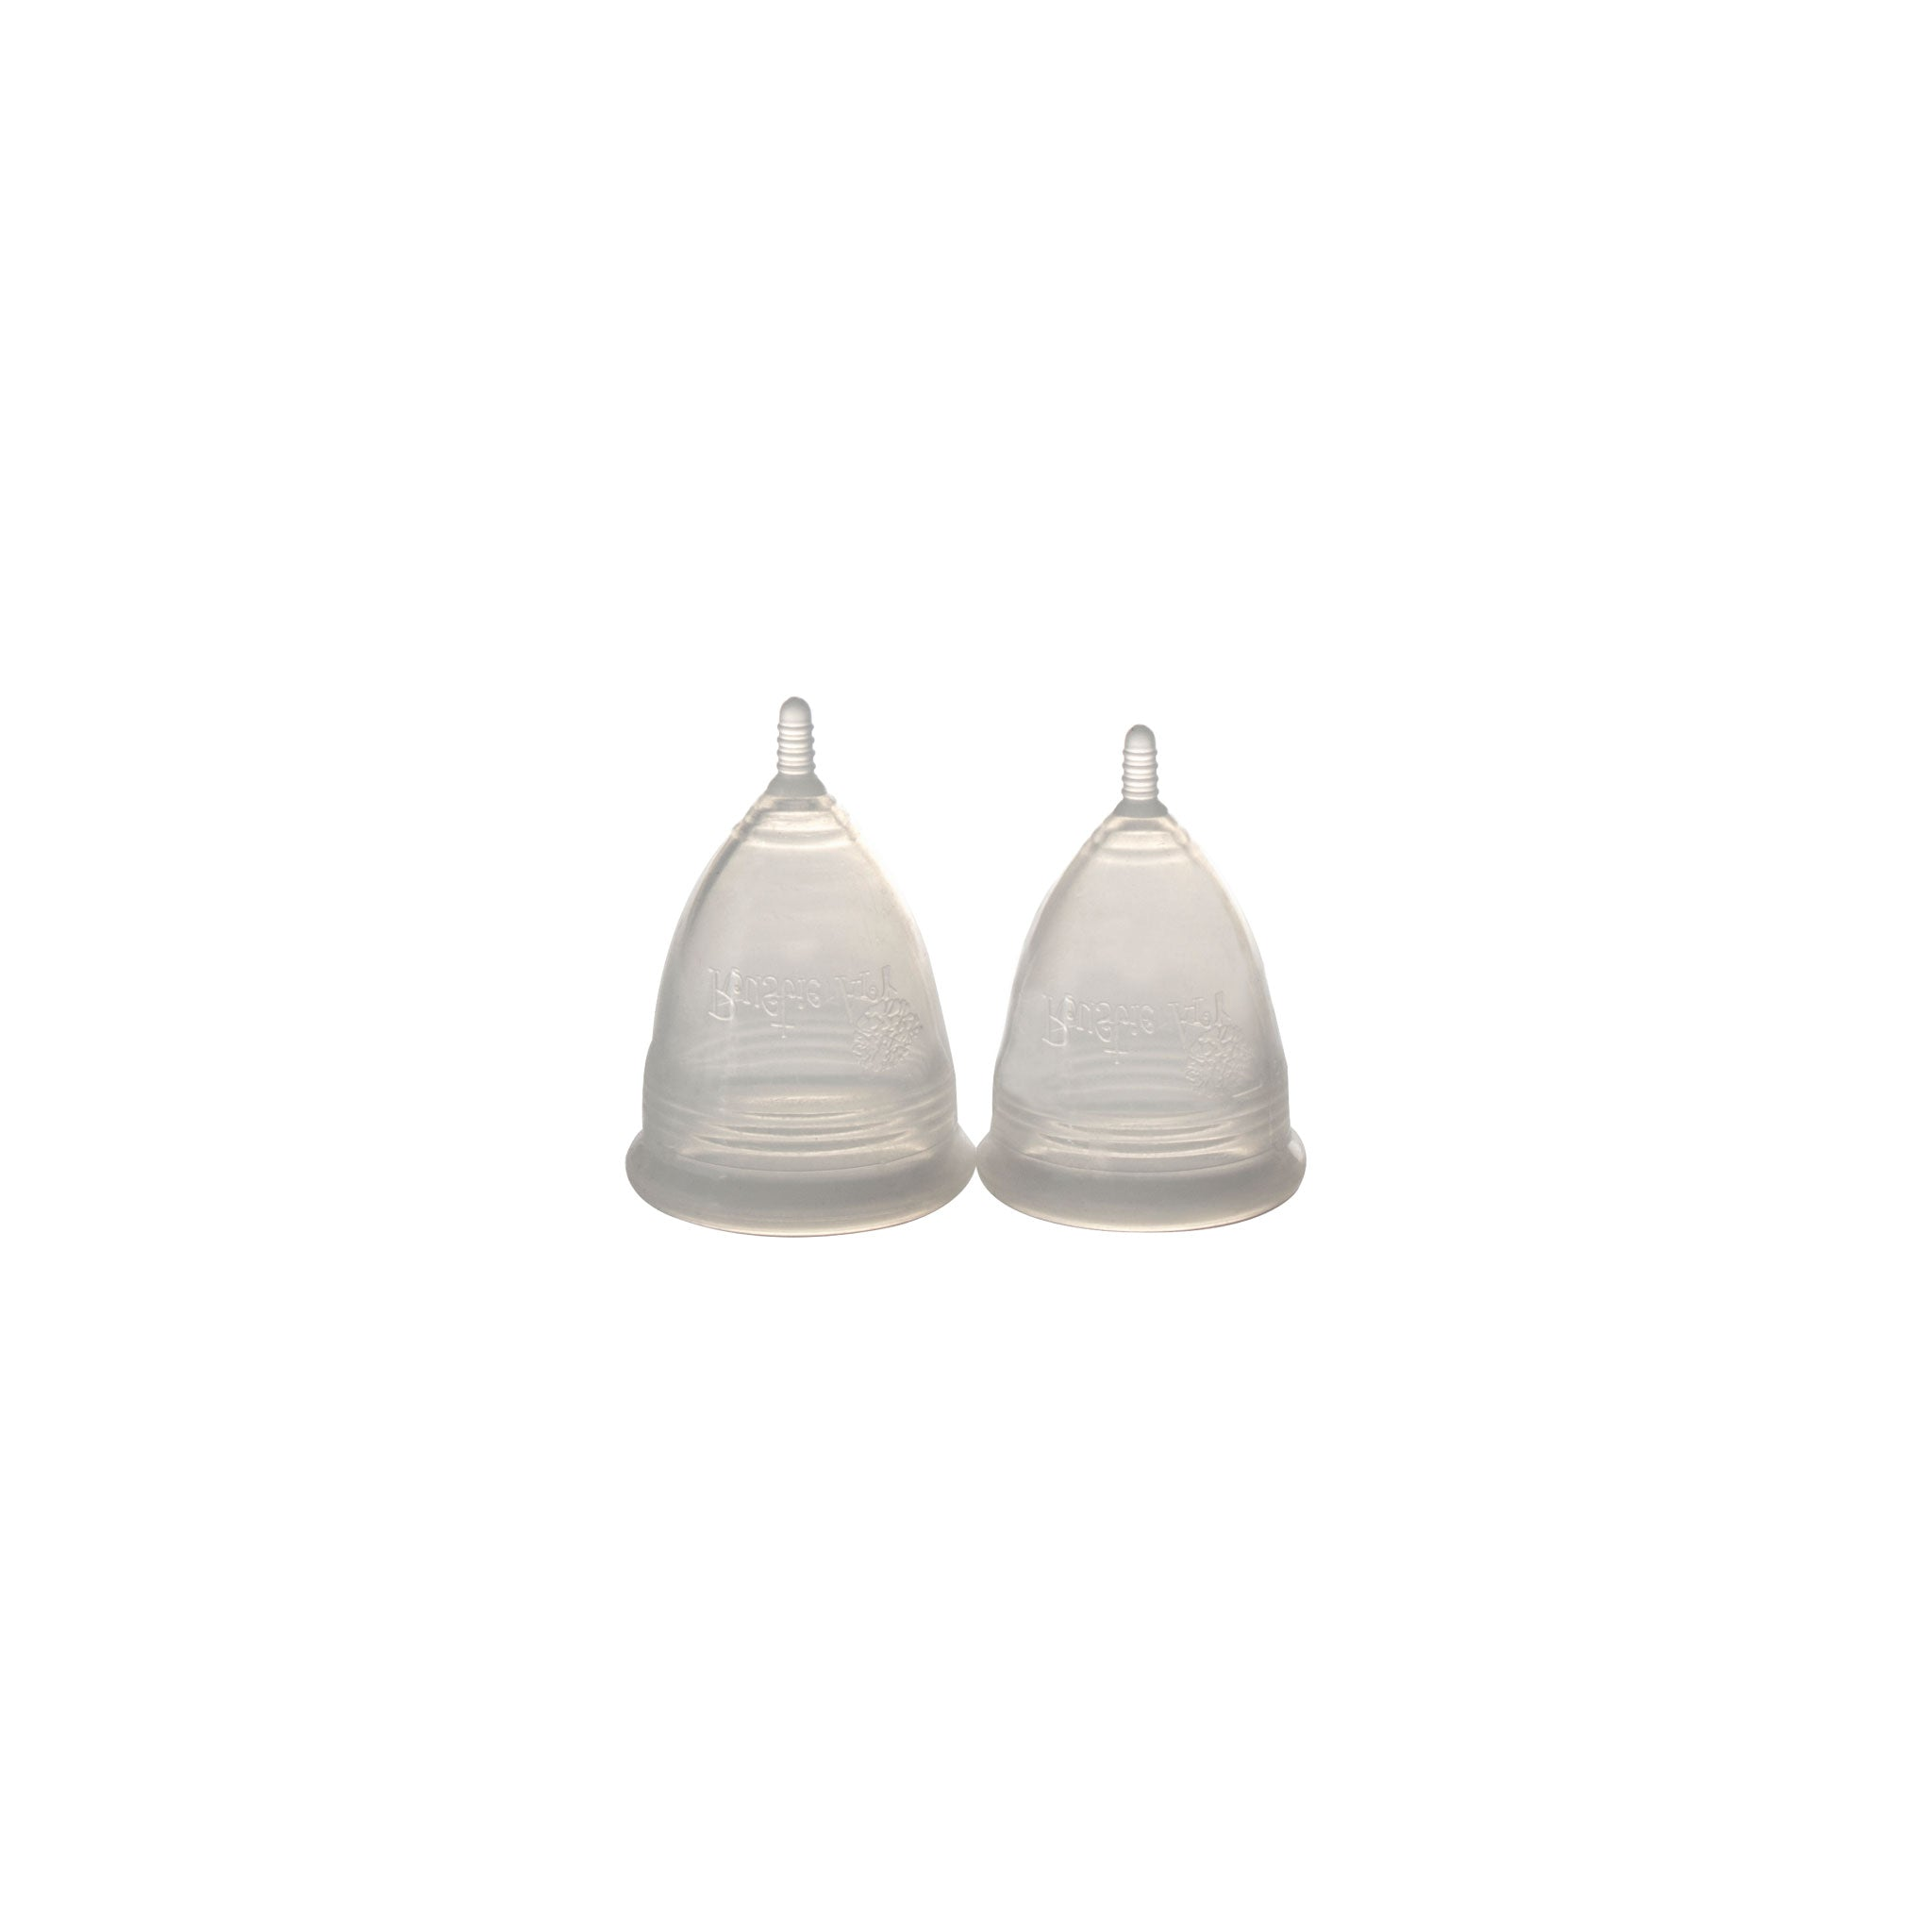 Feminine Care | Menstrual Cup Kit - Small